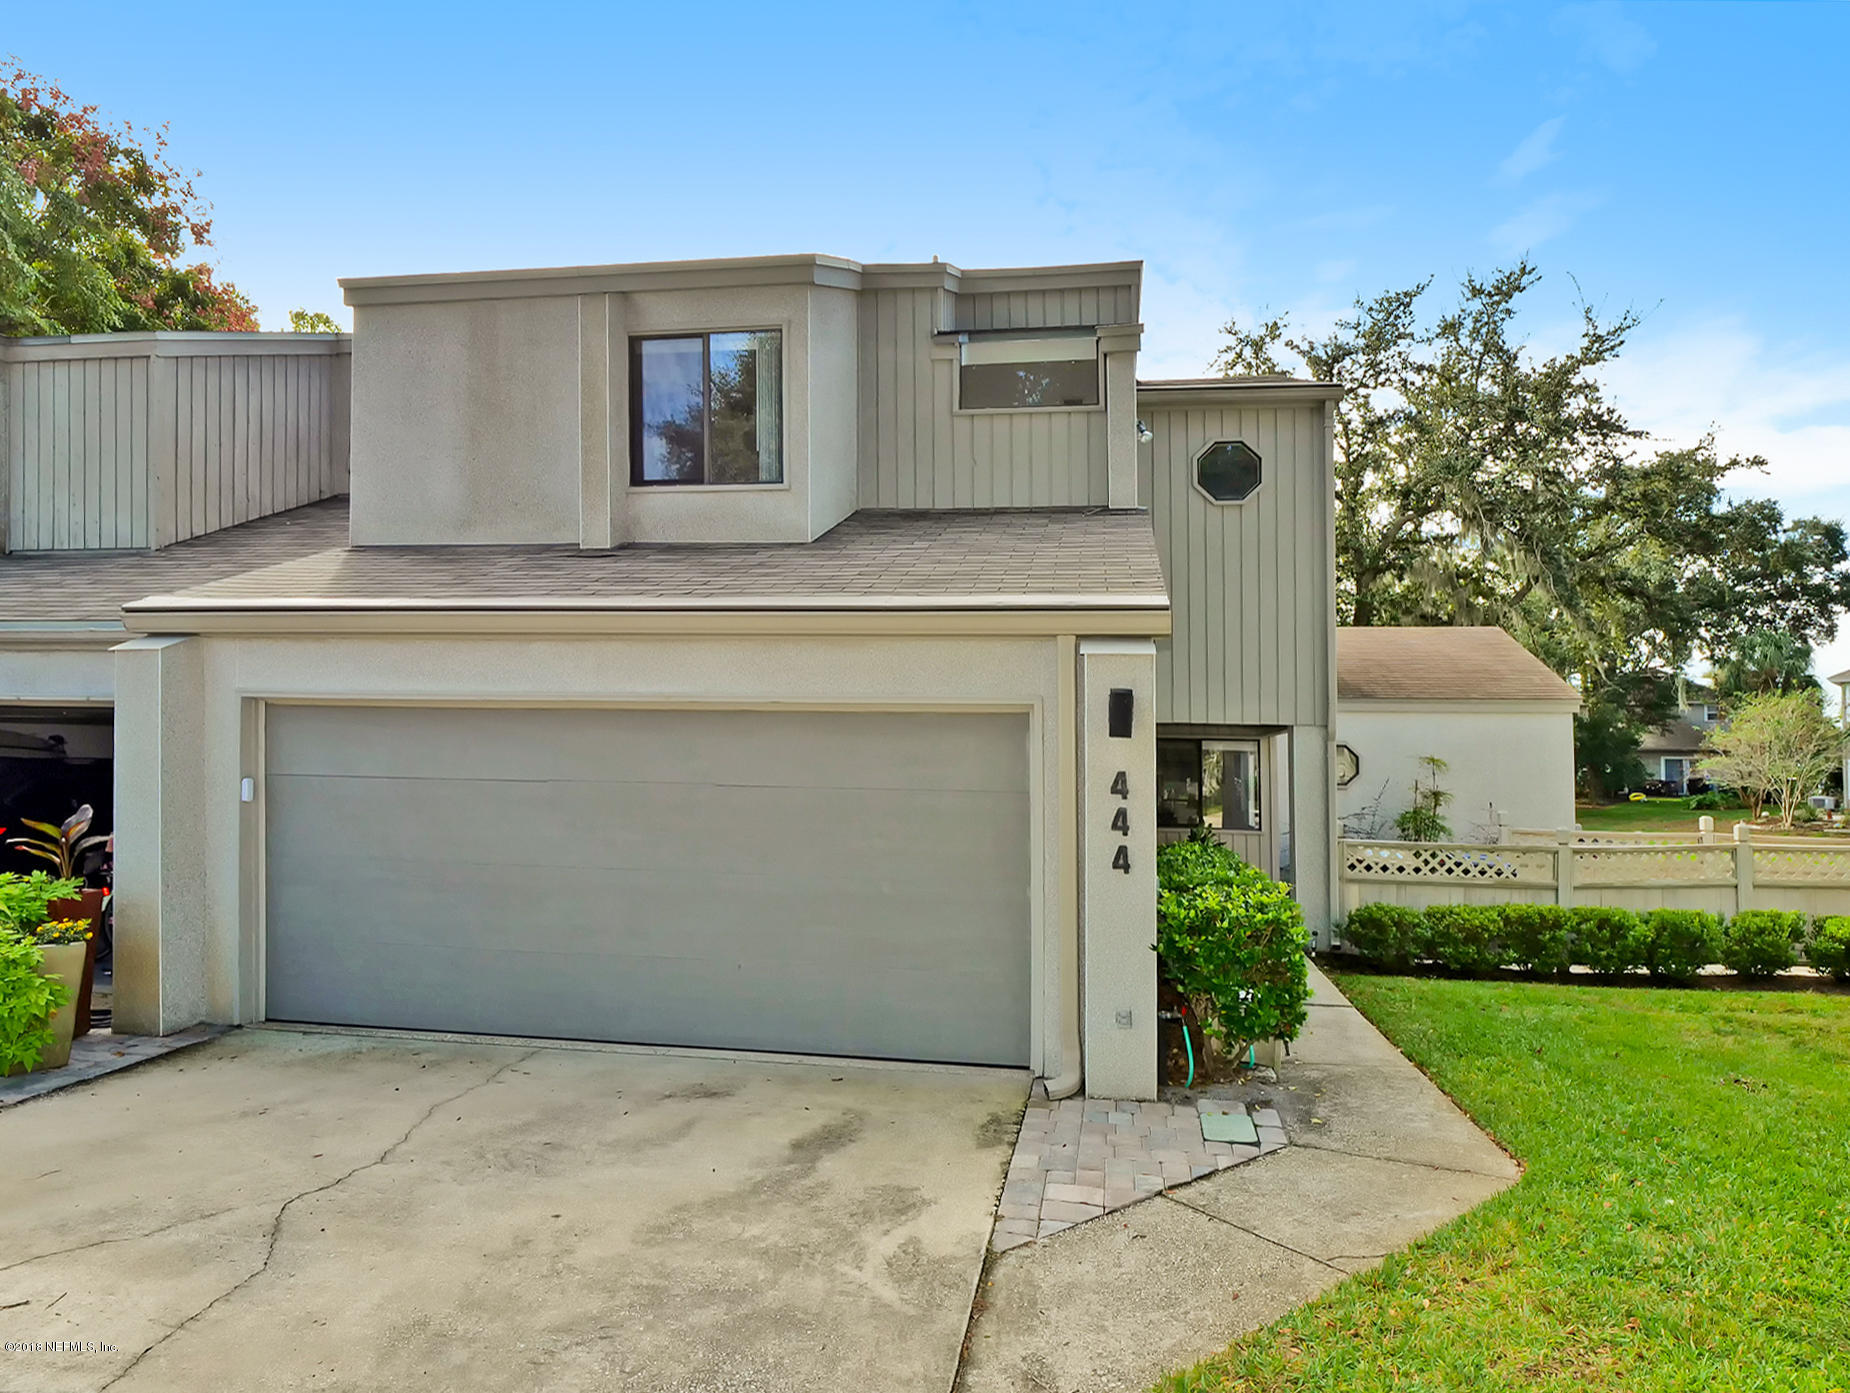 444 OSPREY, ATLANTIC BEACH, FLORIDA 32233, 4 Bedrooms Bedrooms, ,3 BathroomsBathrooms,Residential - townhome,For sale,OSPREY,966150